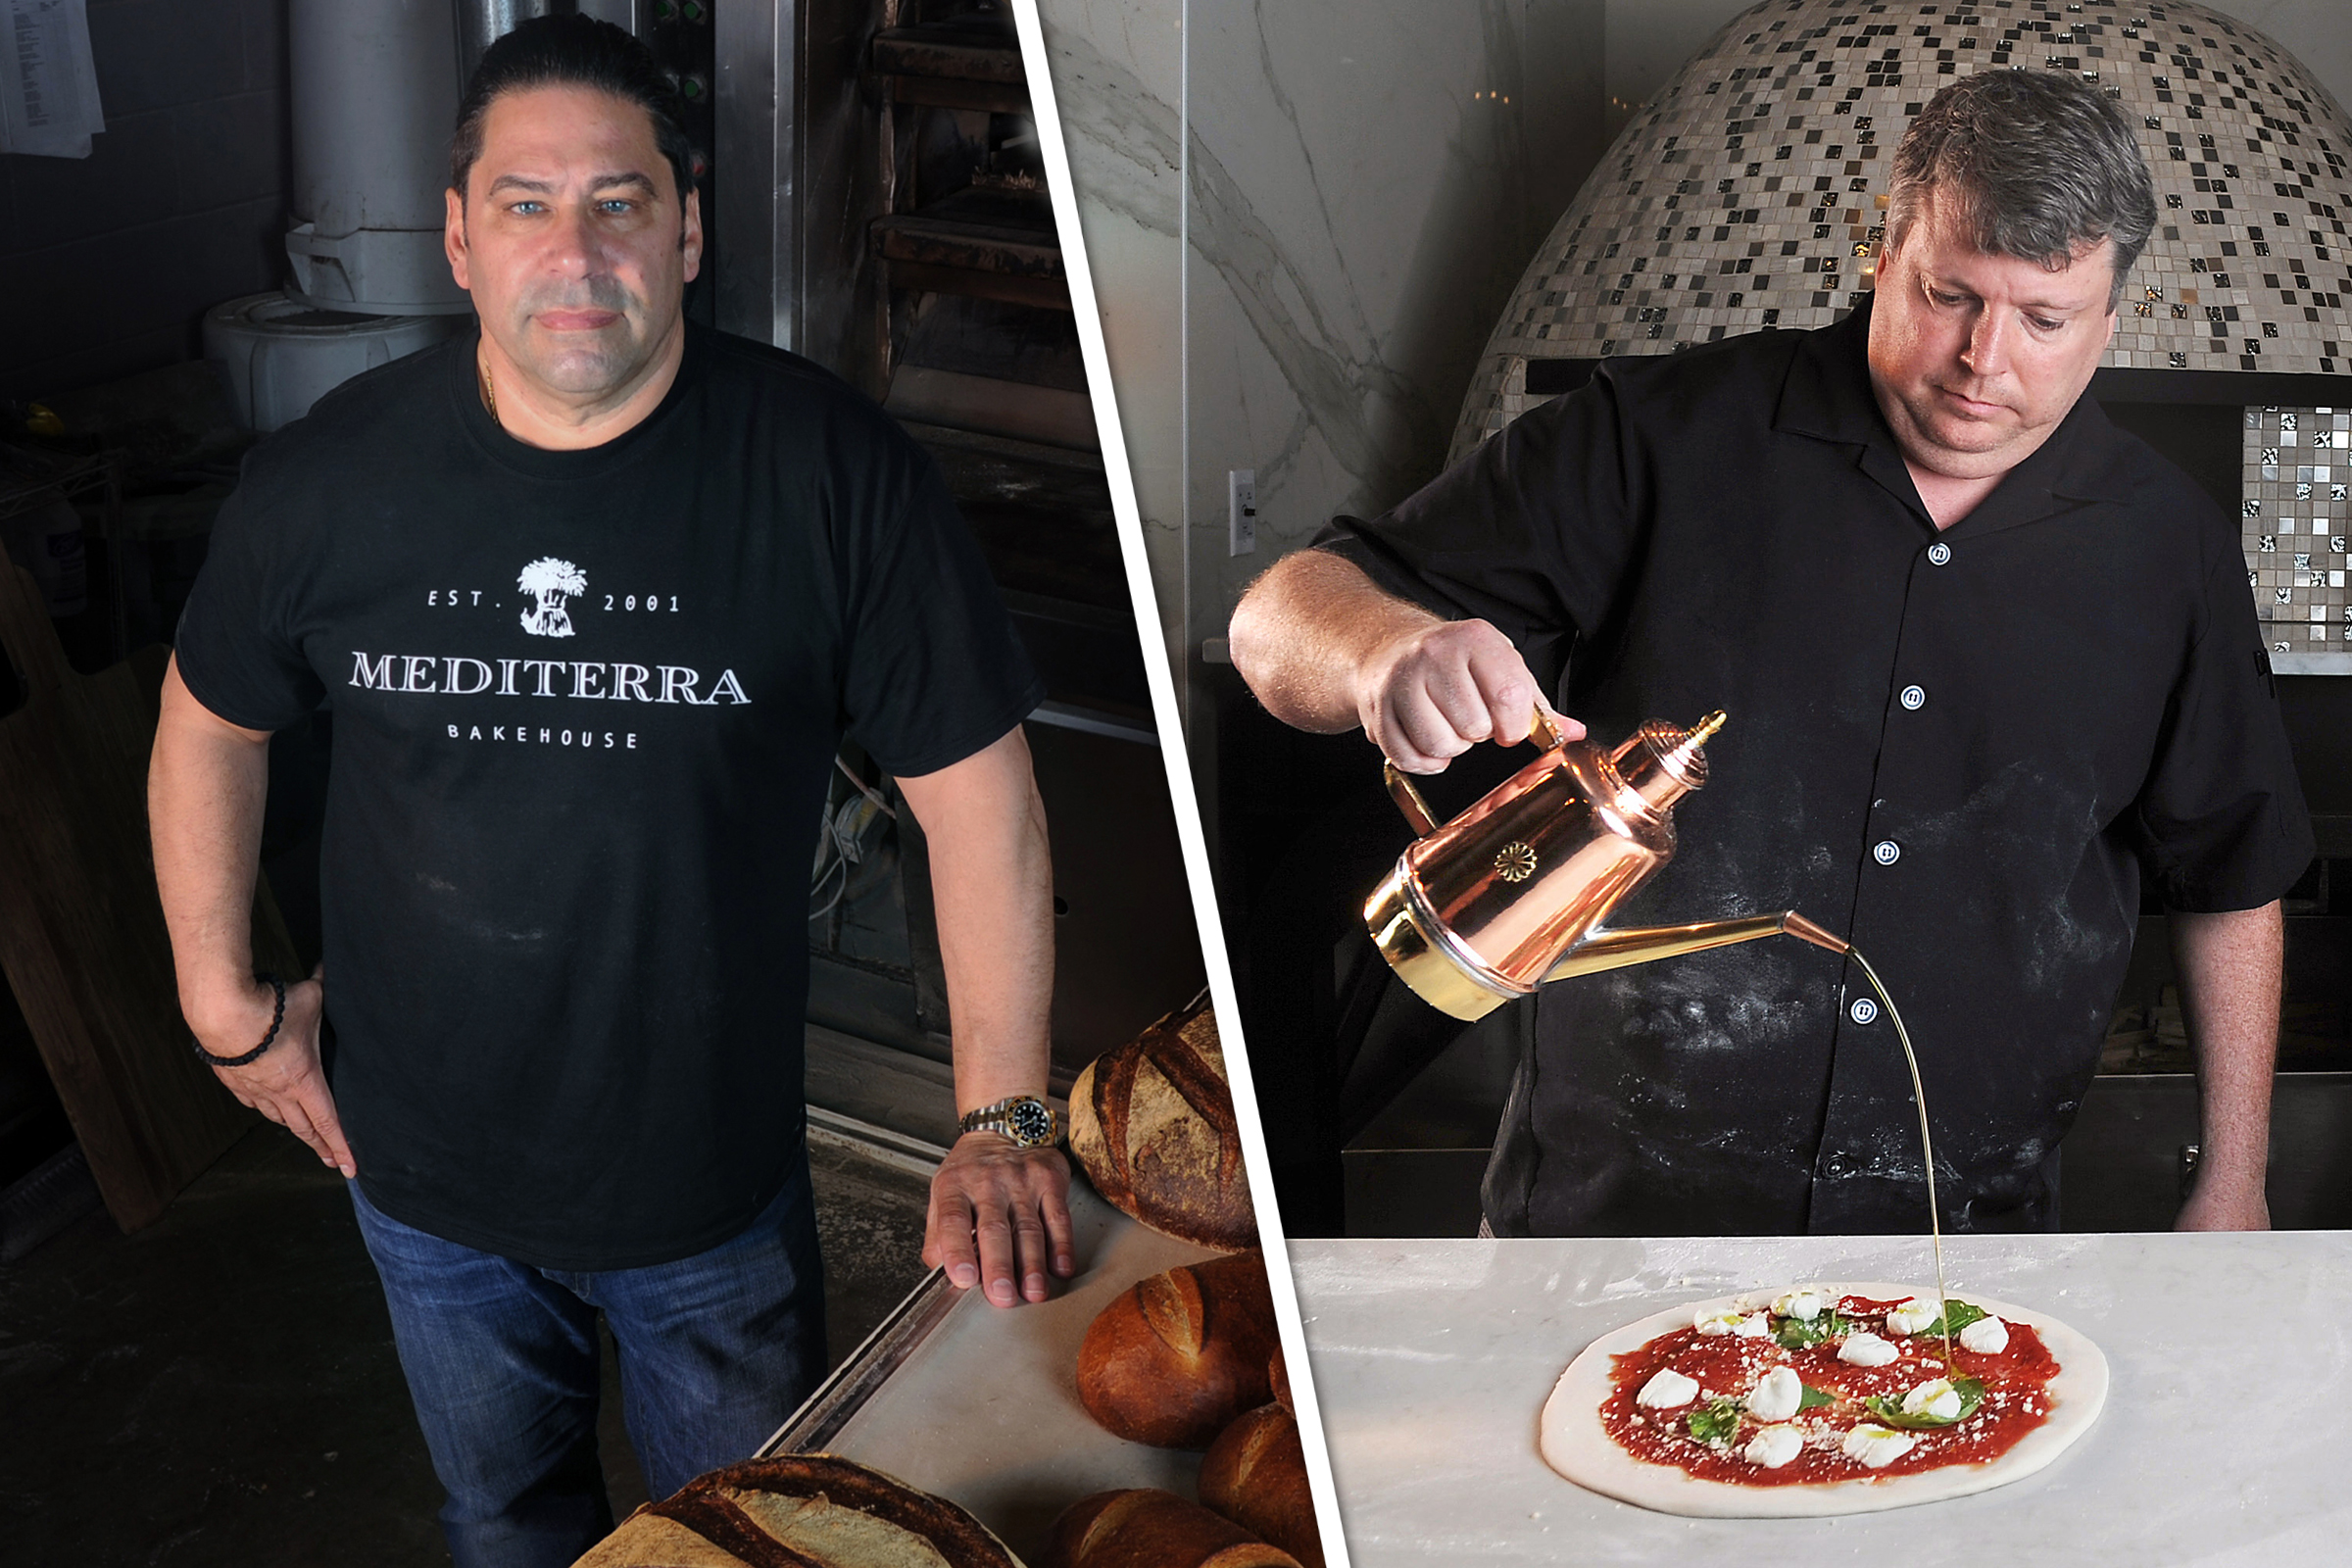 FOOD Ambeliotis and Molinaro dough Nate Guidry/Post-Gazette Left: Nick Ambeliotis, owner of Mediterra Bakehouse. Right: Ron Molinaro, executive chef and owner of Il Pizzaiolo.